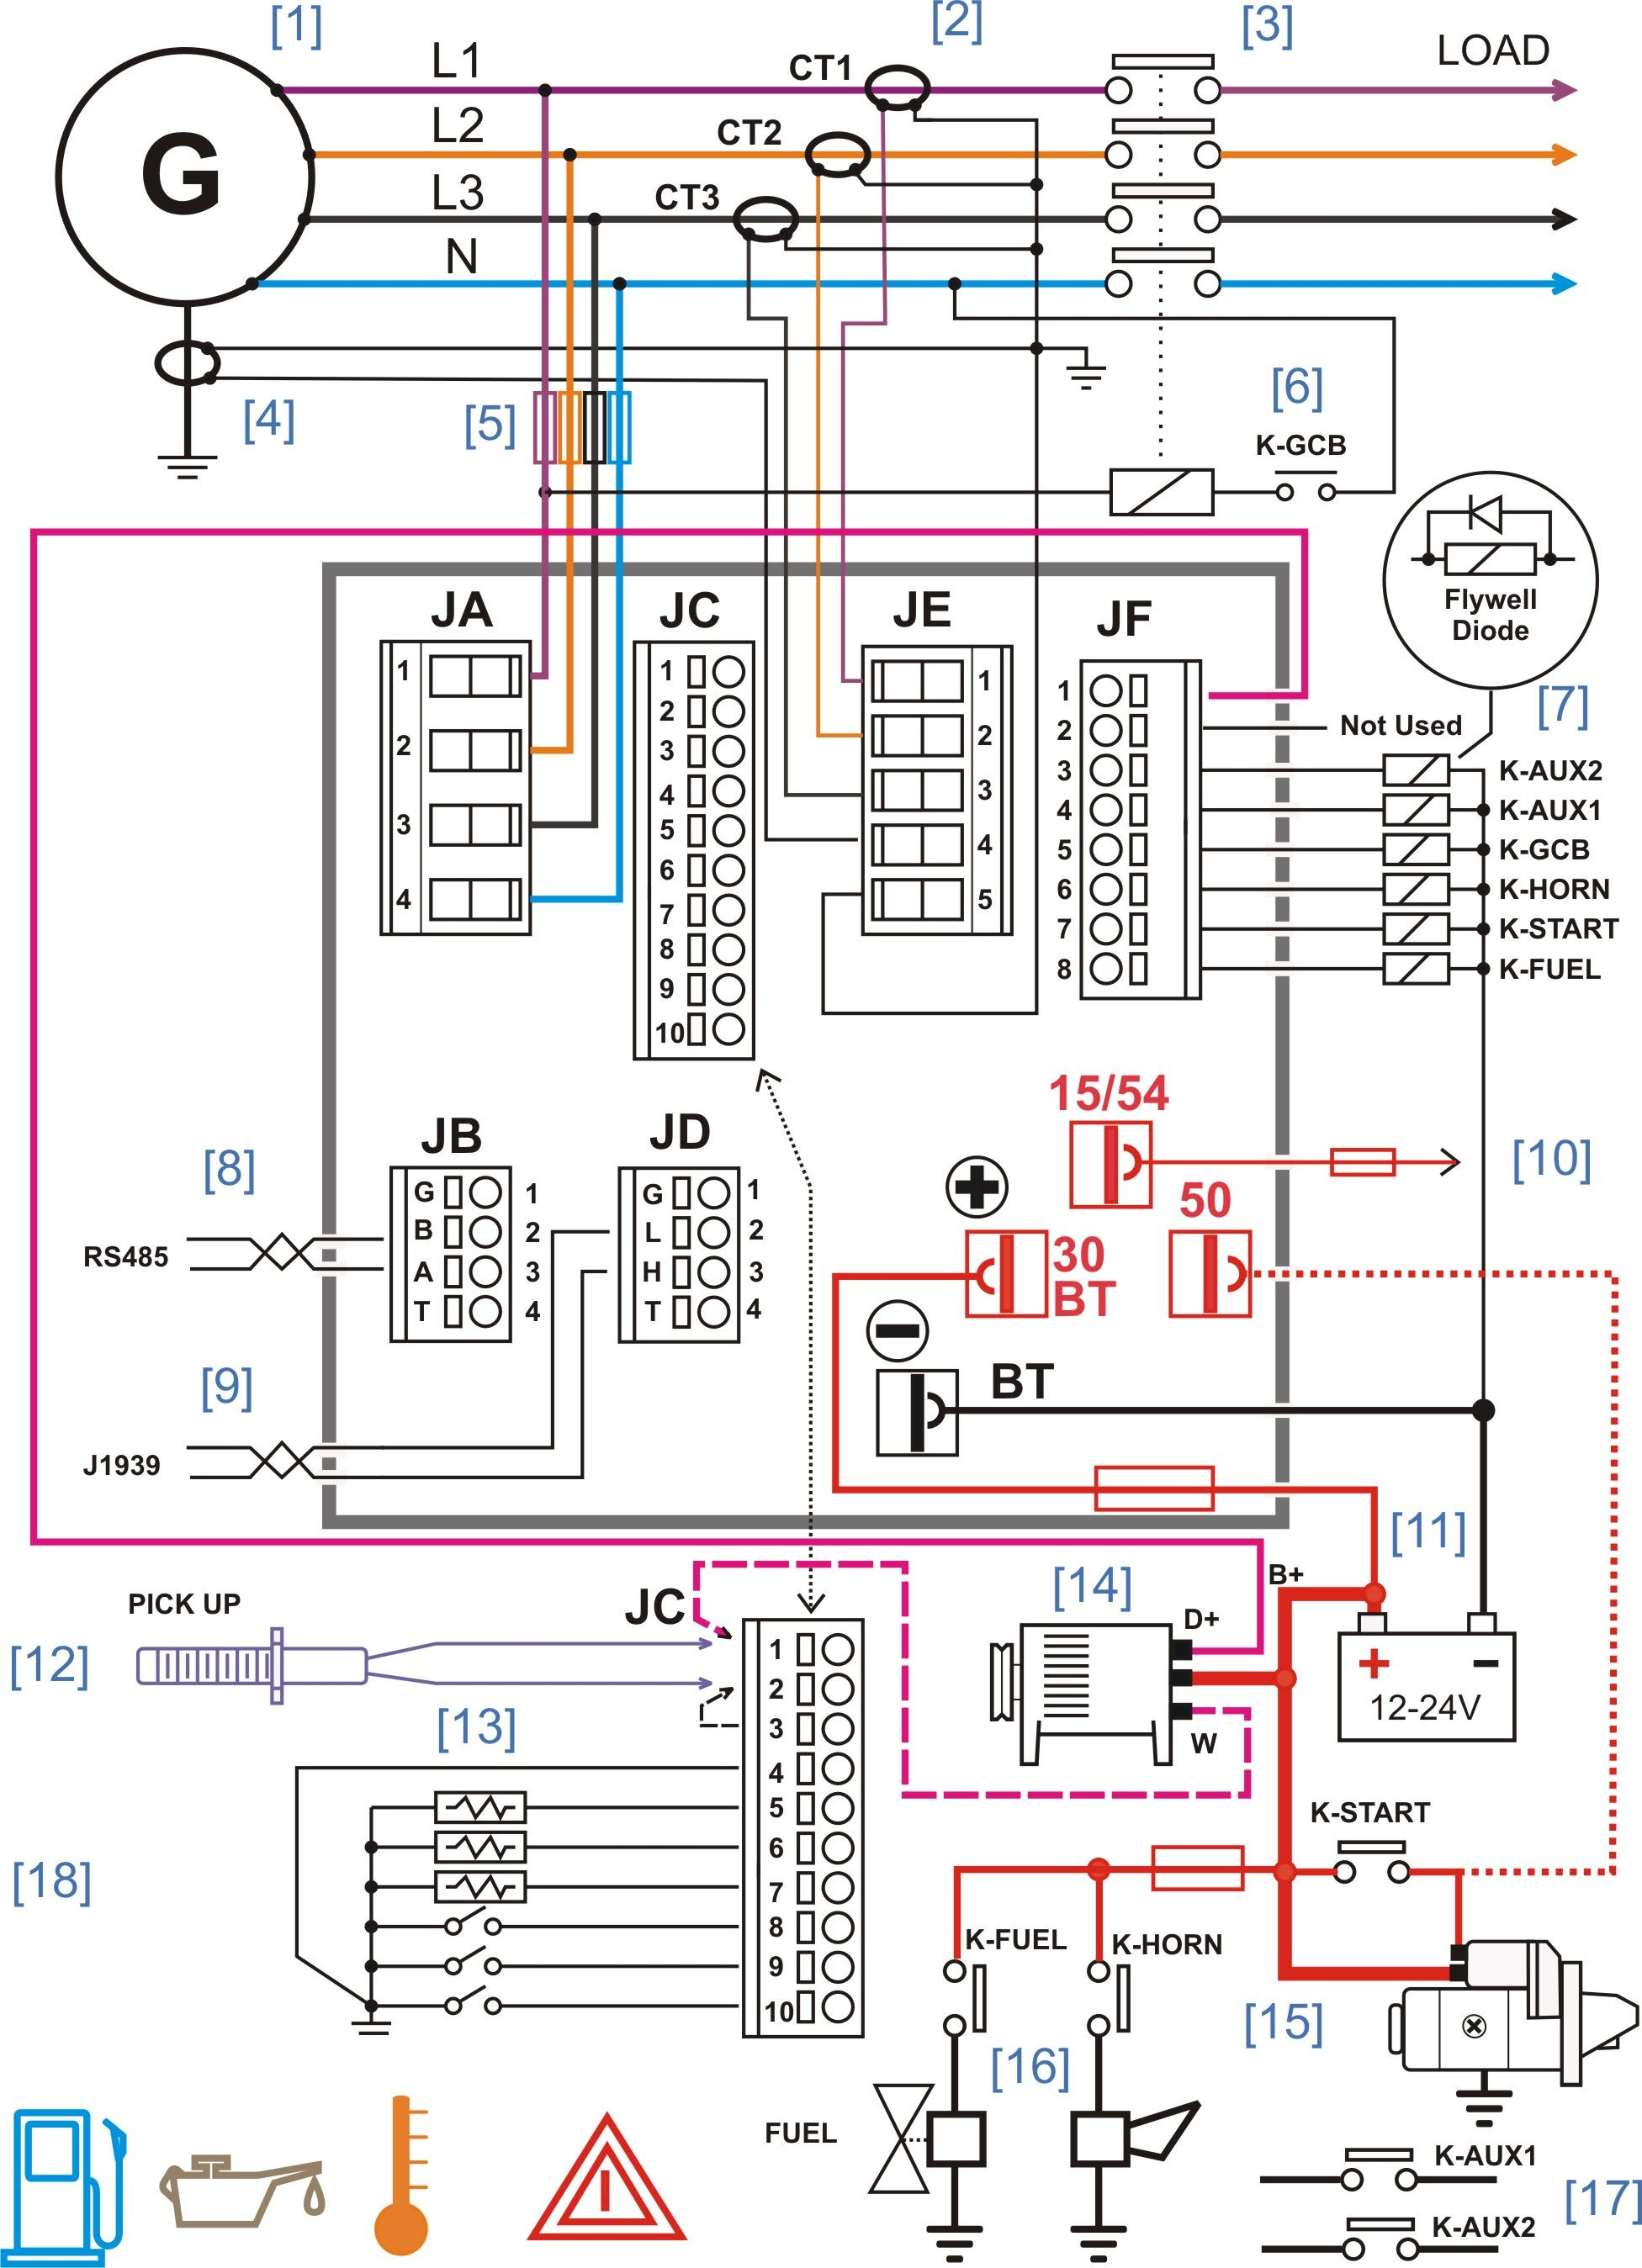 Wiring Diagrams For Generators Just Another Wiring Diagram Blog